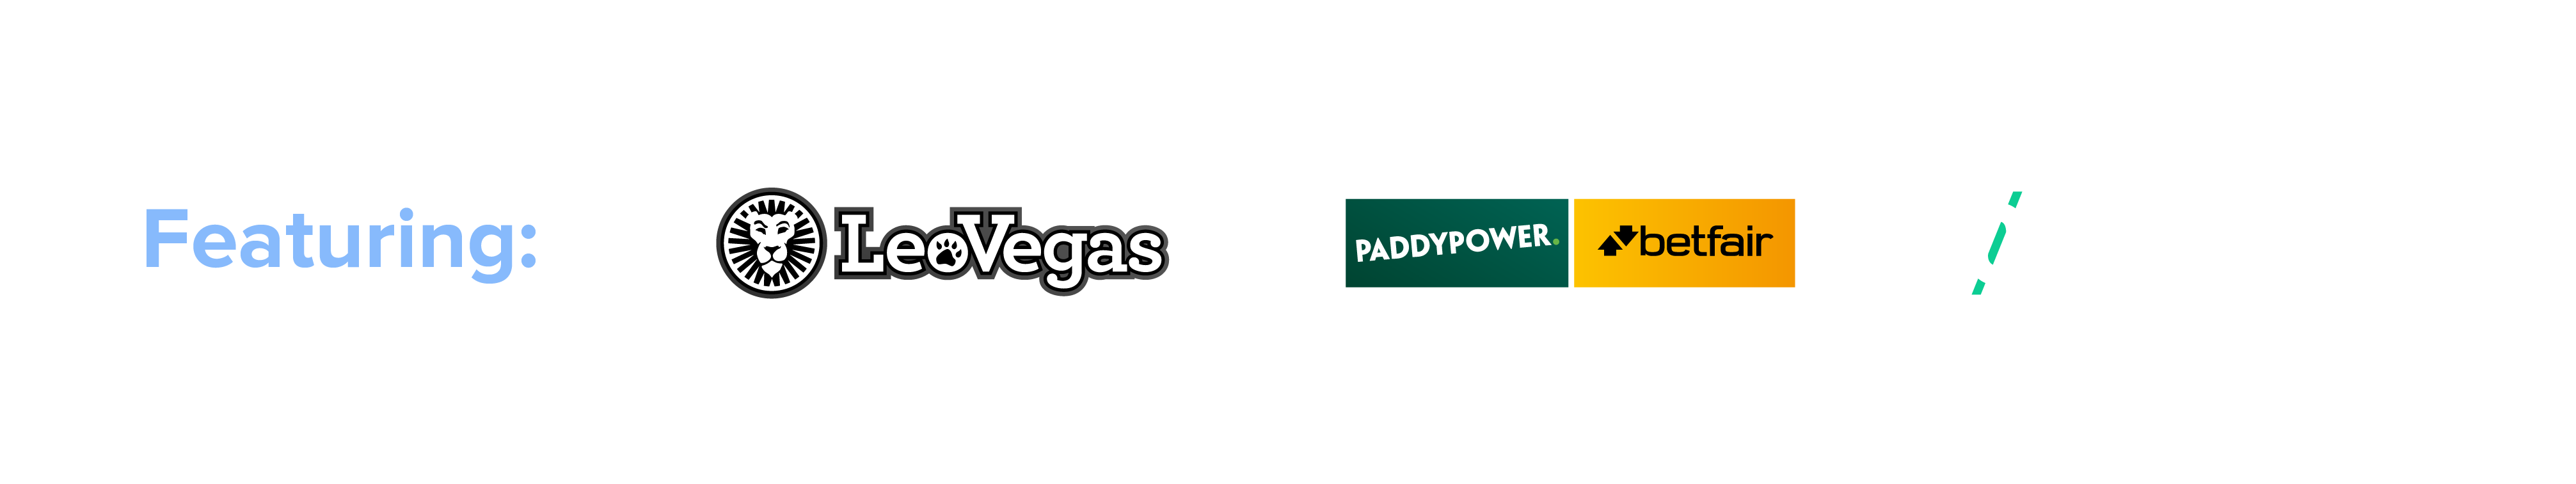 Featuring LeoVegas Paddy Power and Smarkets